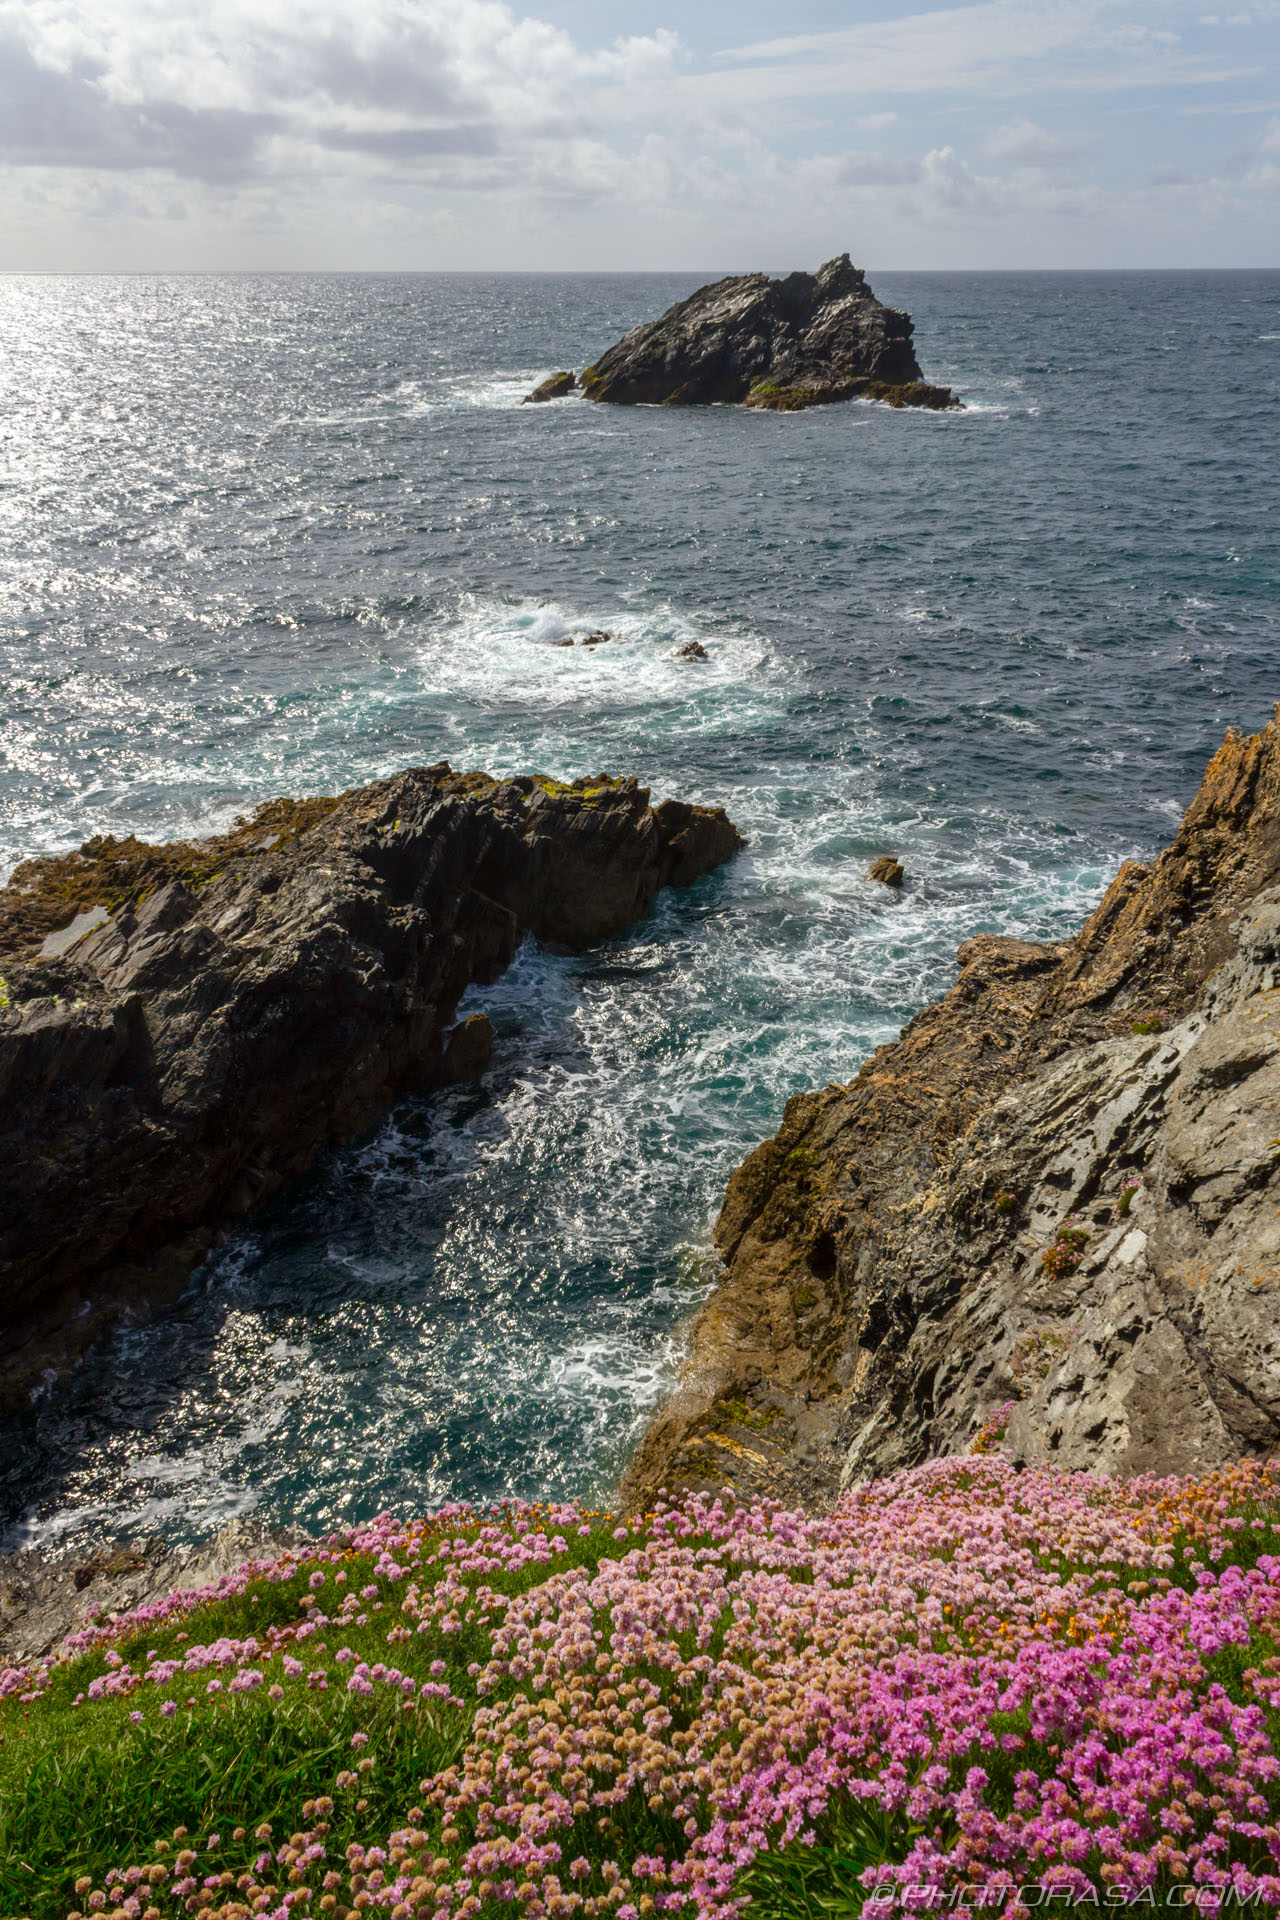 https://photorasa.com/newquay/rocky-outcrop-and-little-island-in-the-background/